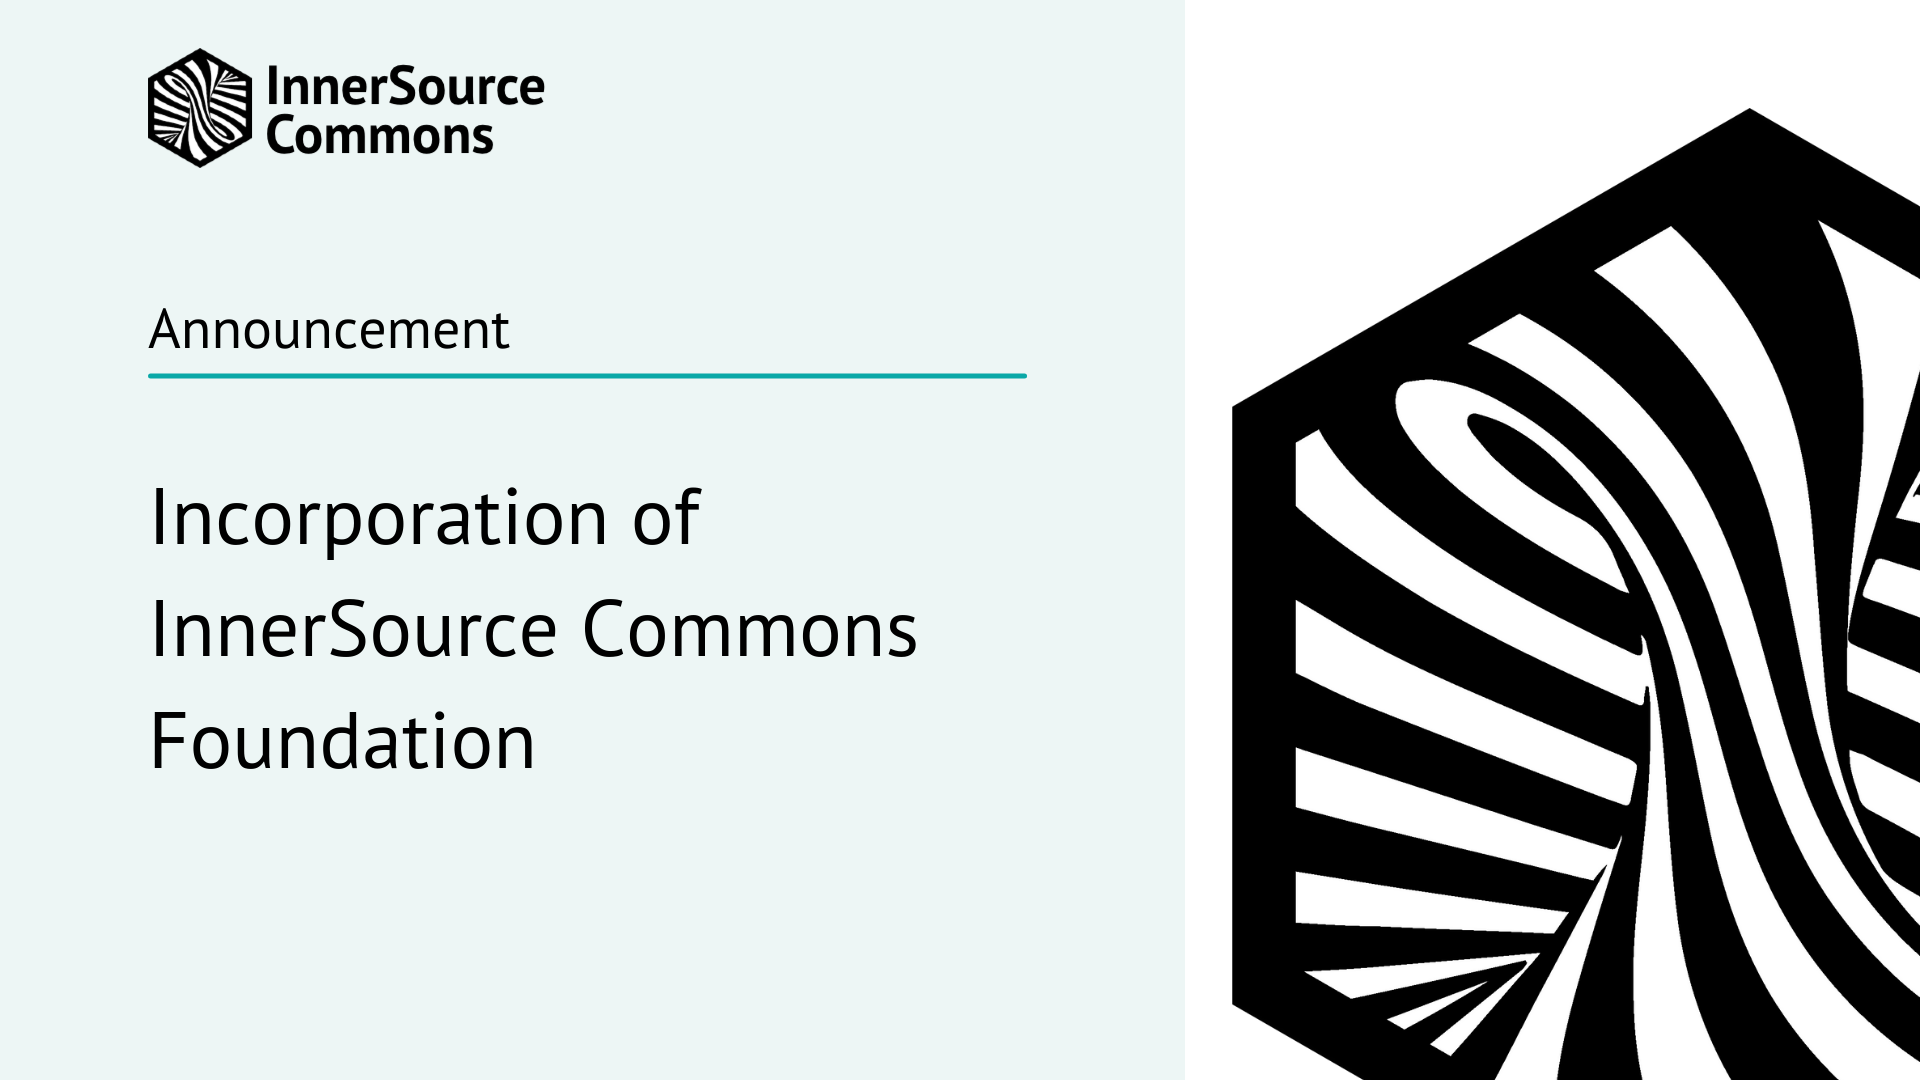 Incorporation of InnerSource Commons Foundation